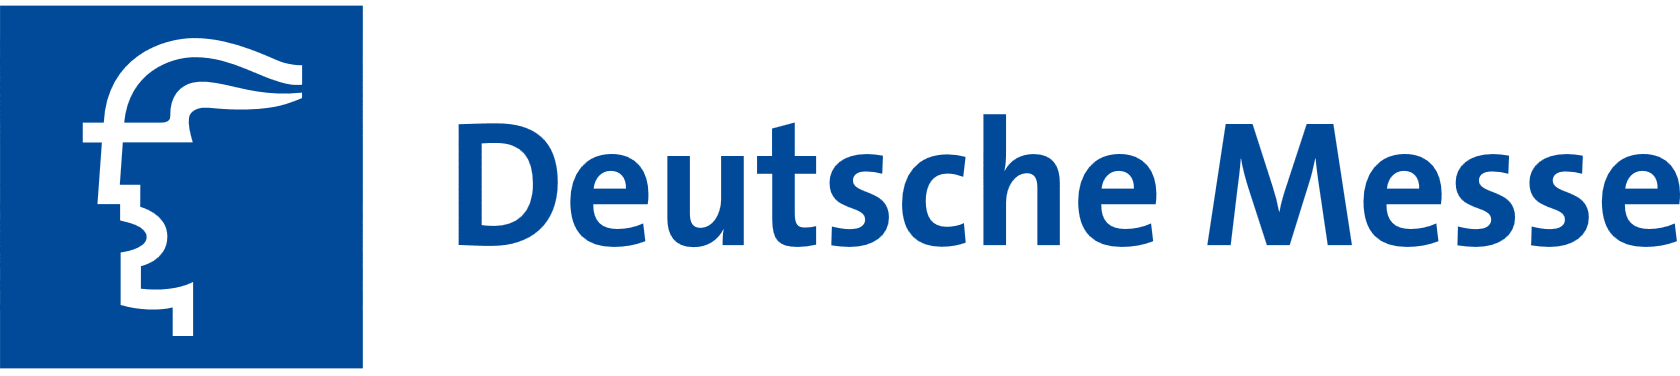 deutsche-messe-ag-logo